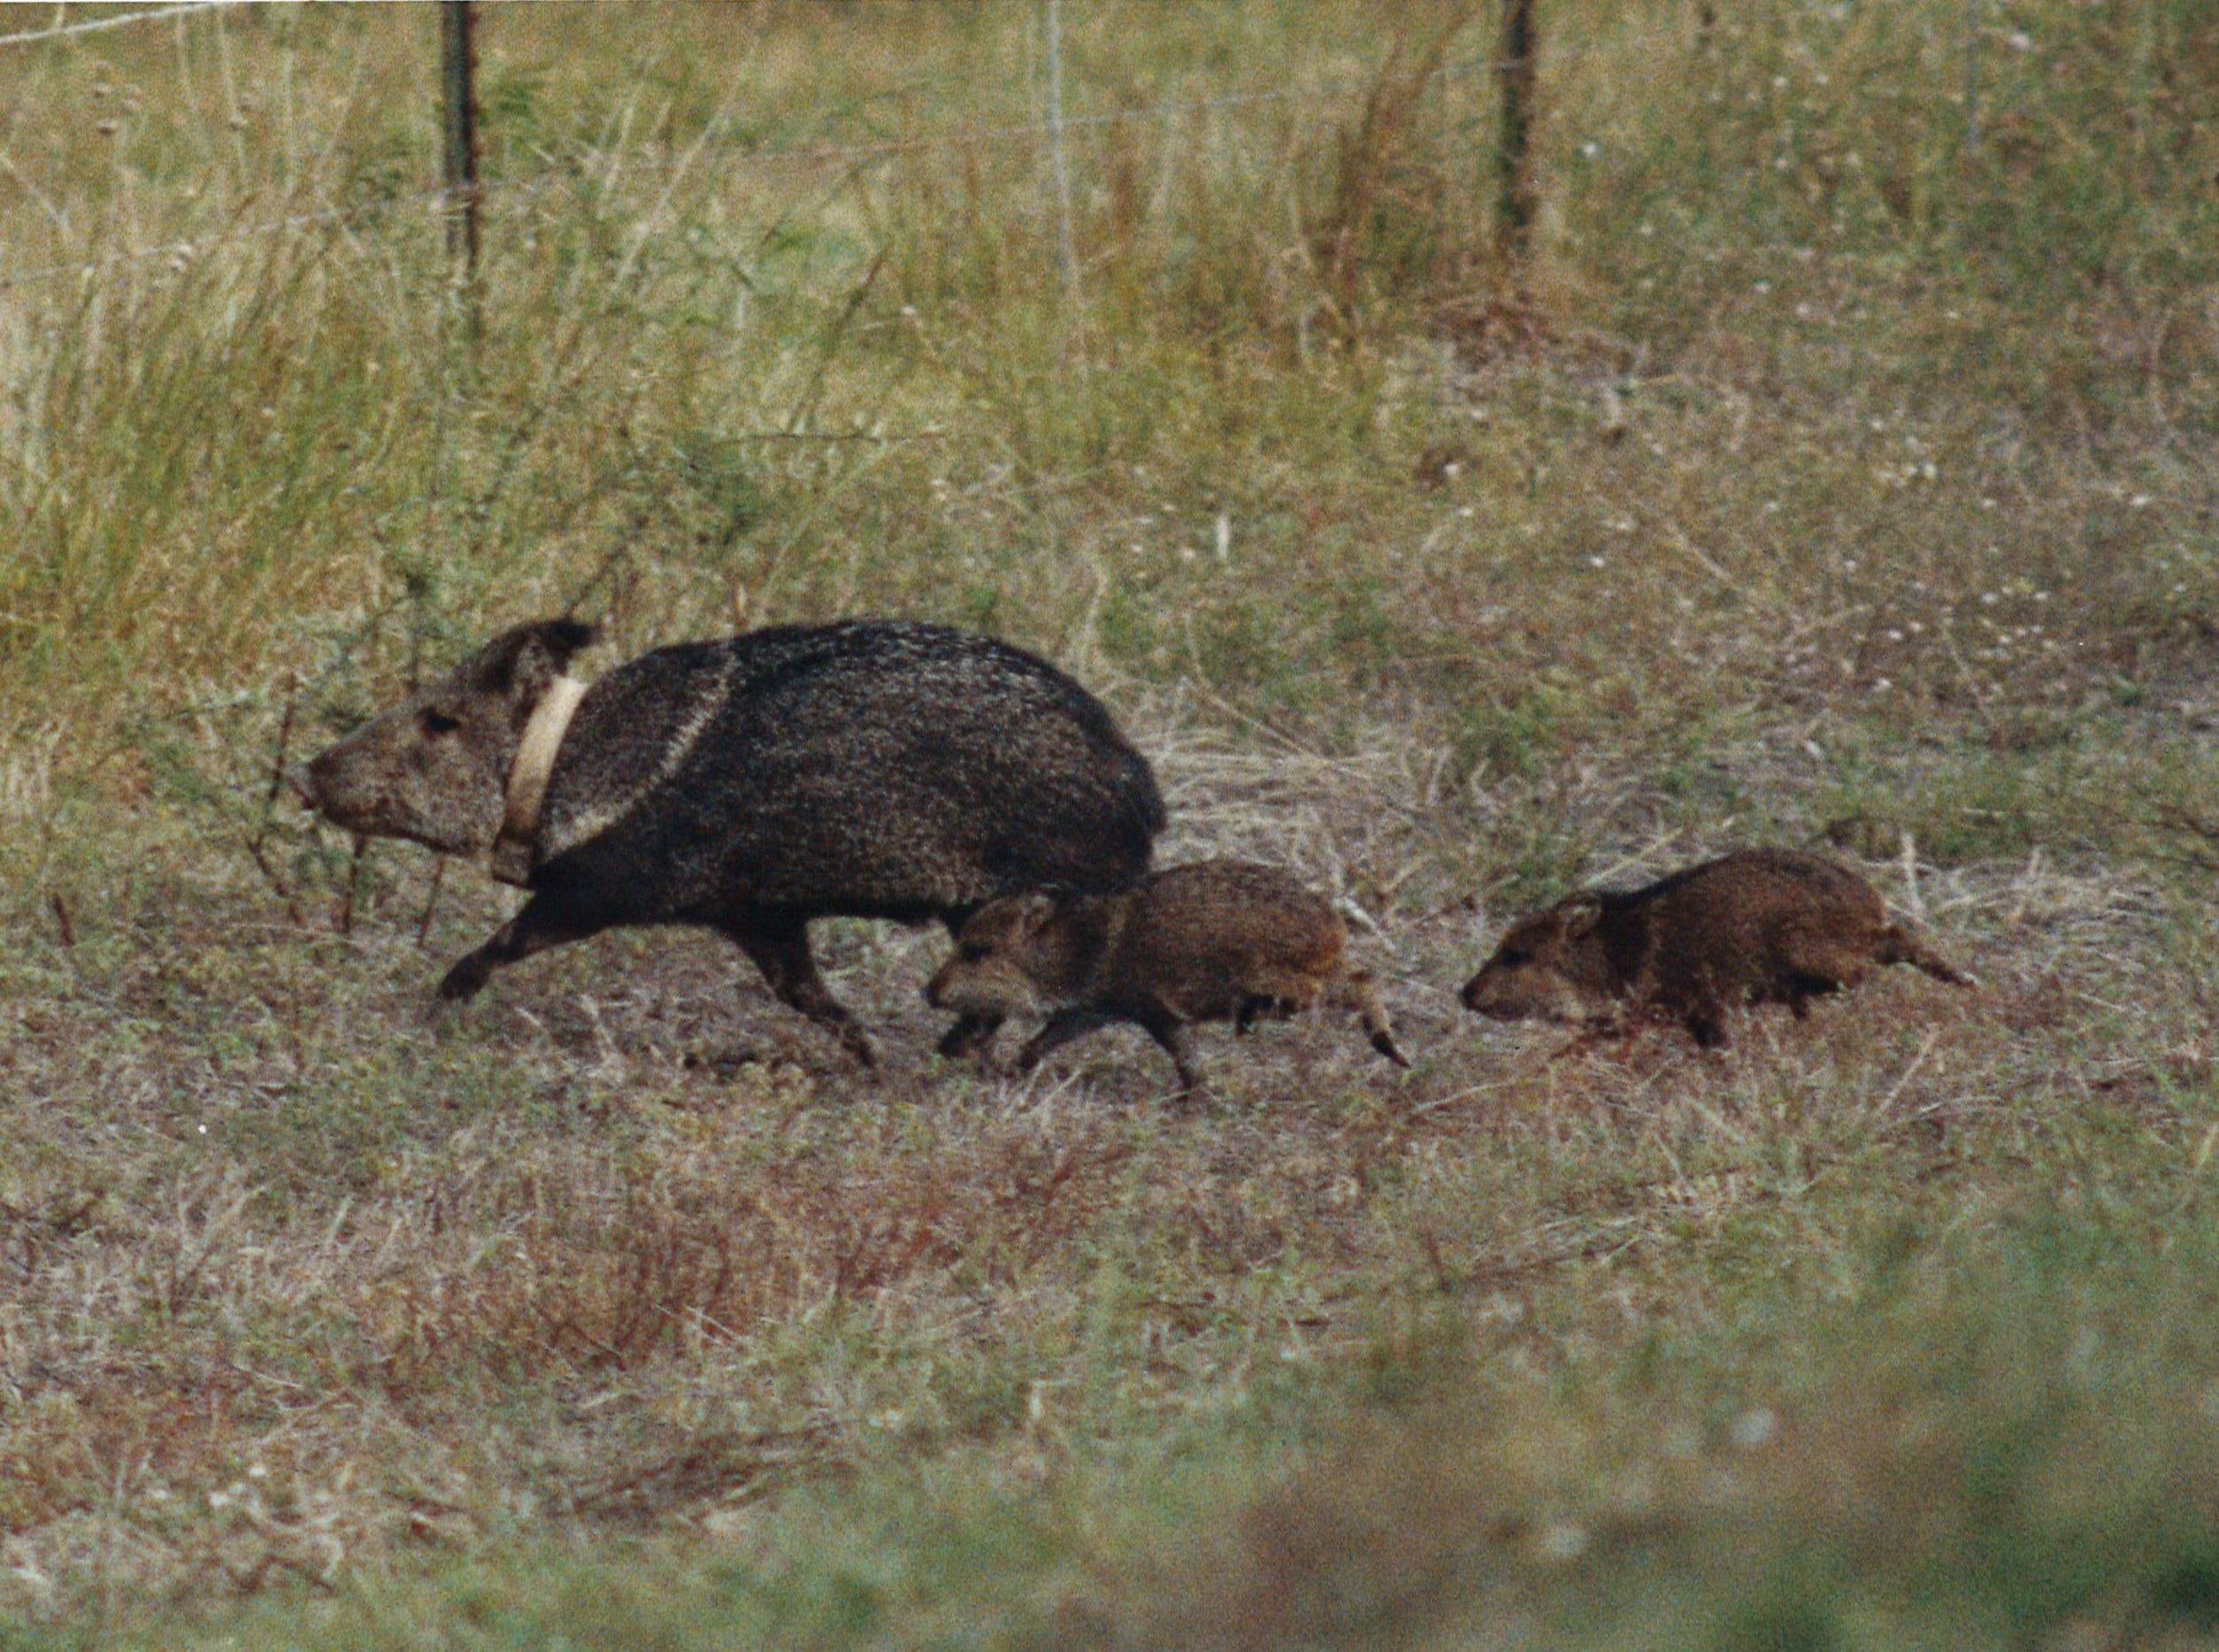 A mother javelina with two babies scurried through the Welder Wildlife Refuge in January 1991. The mother has a radio telemetry collar to allow researchers to track her movements.